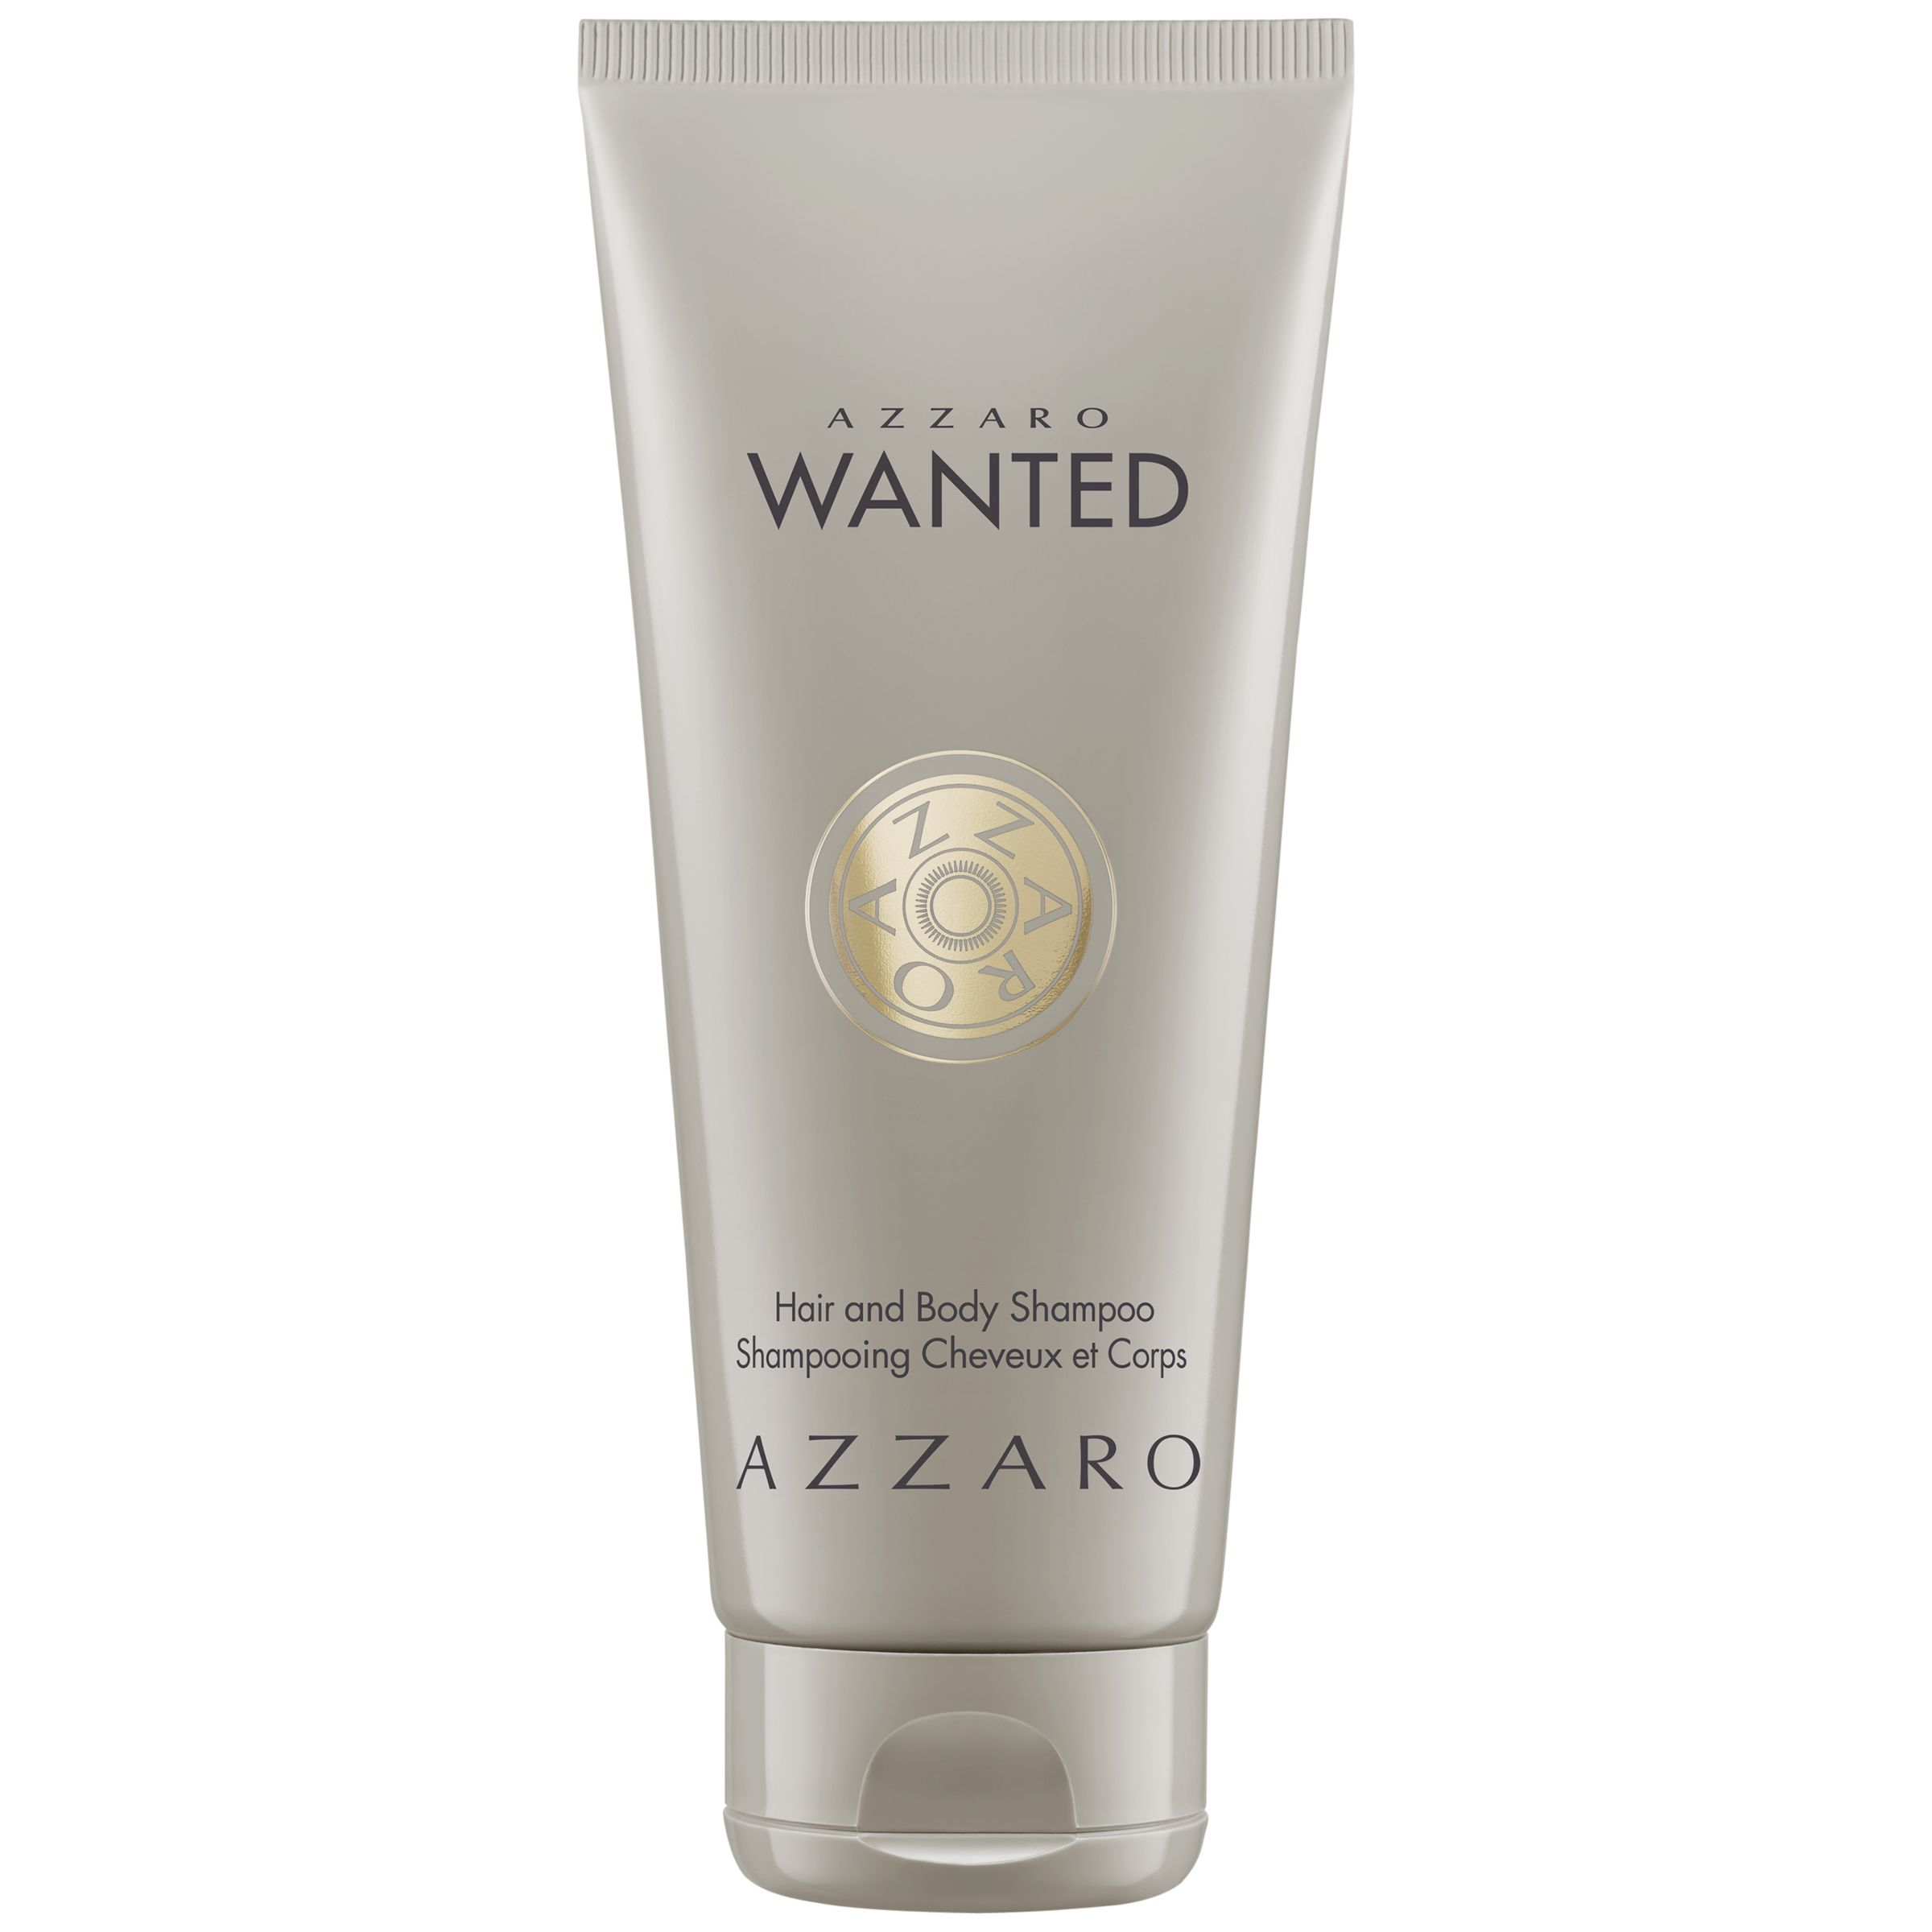 azzaro wanted hair body shampoo 100ml octer. Black Bedroom Furniture Sets. Home Design Ideas